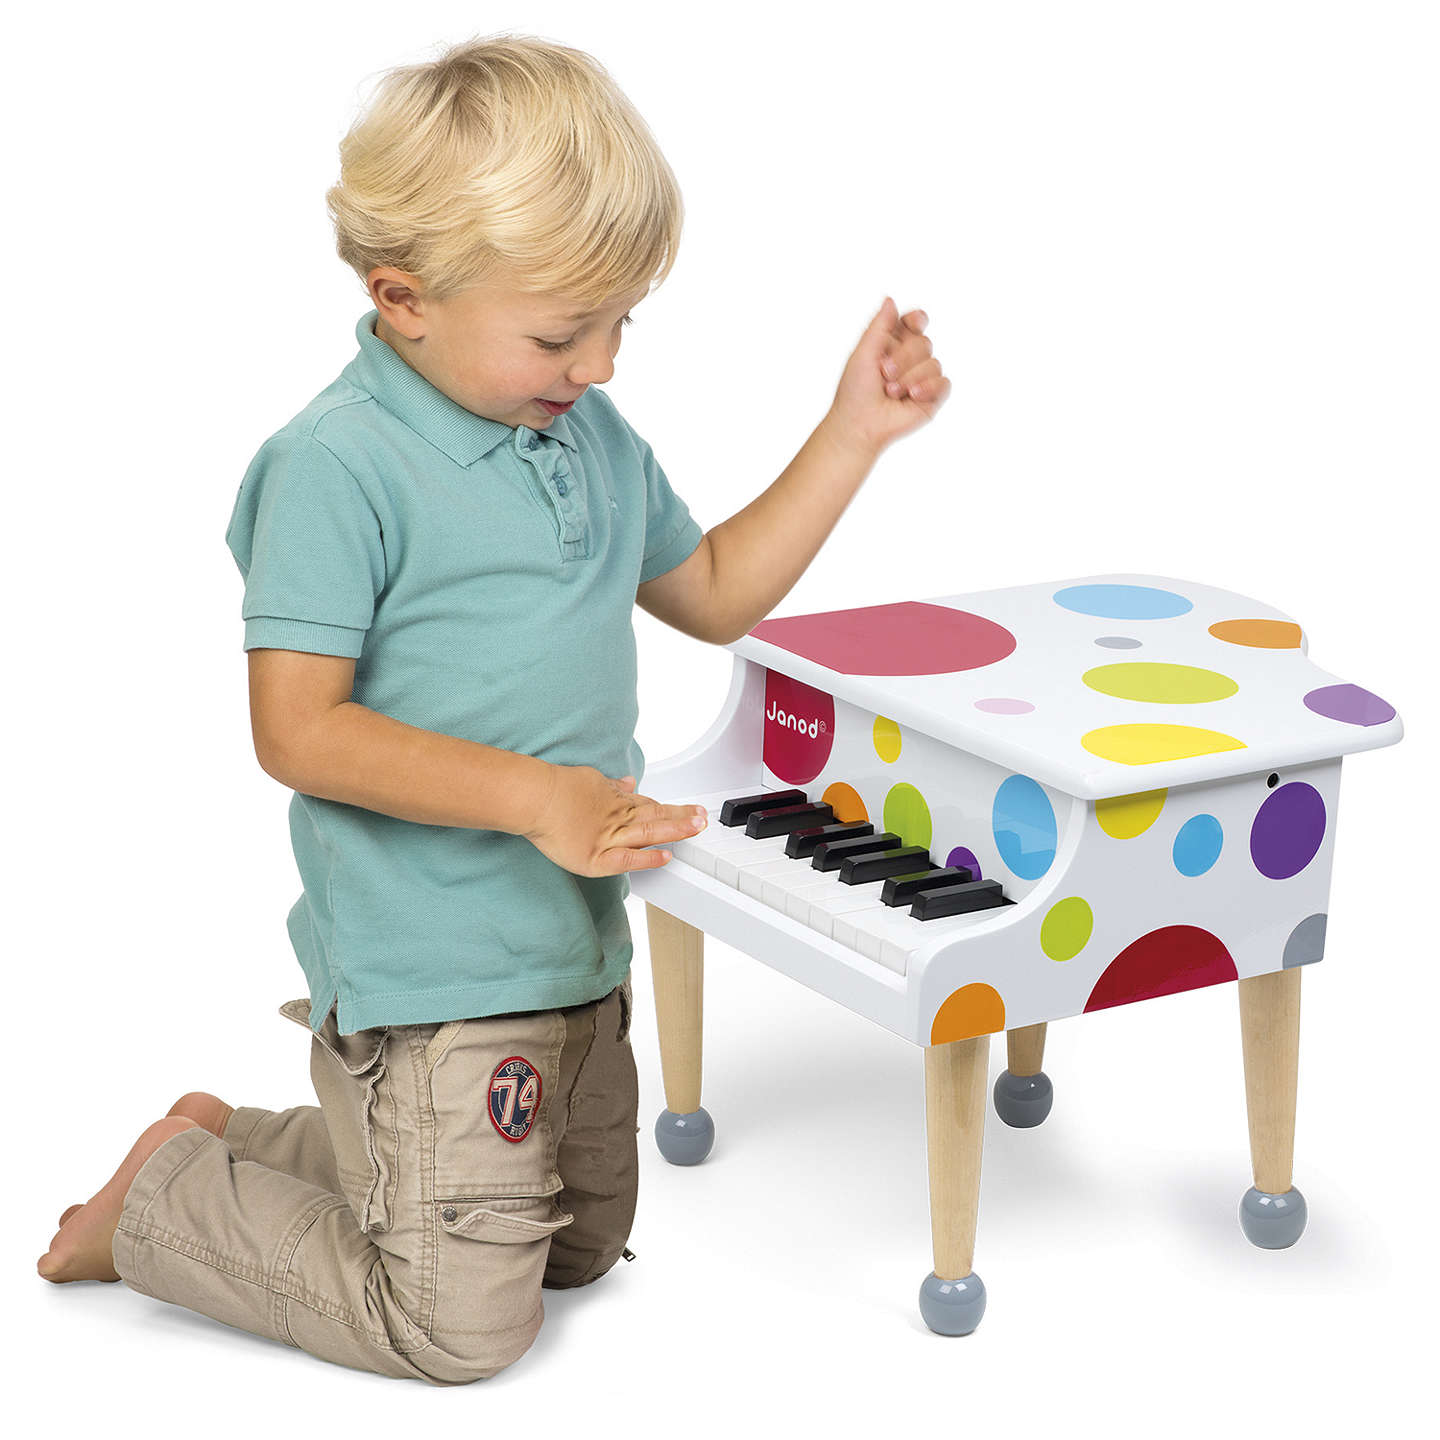 BuyJanod Confetti Wooden Grand Piano Online at johnlewis.com